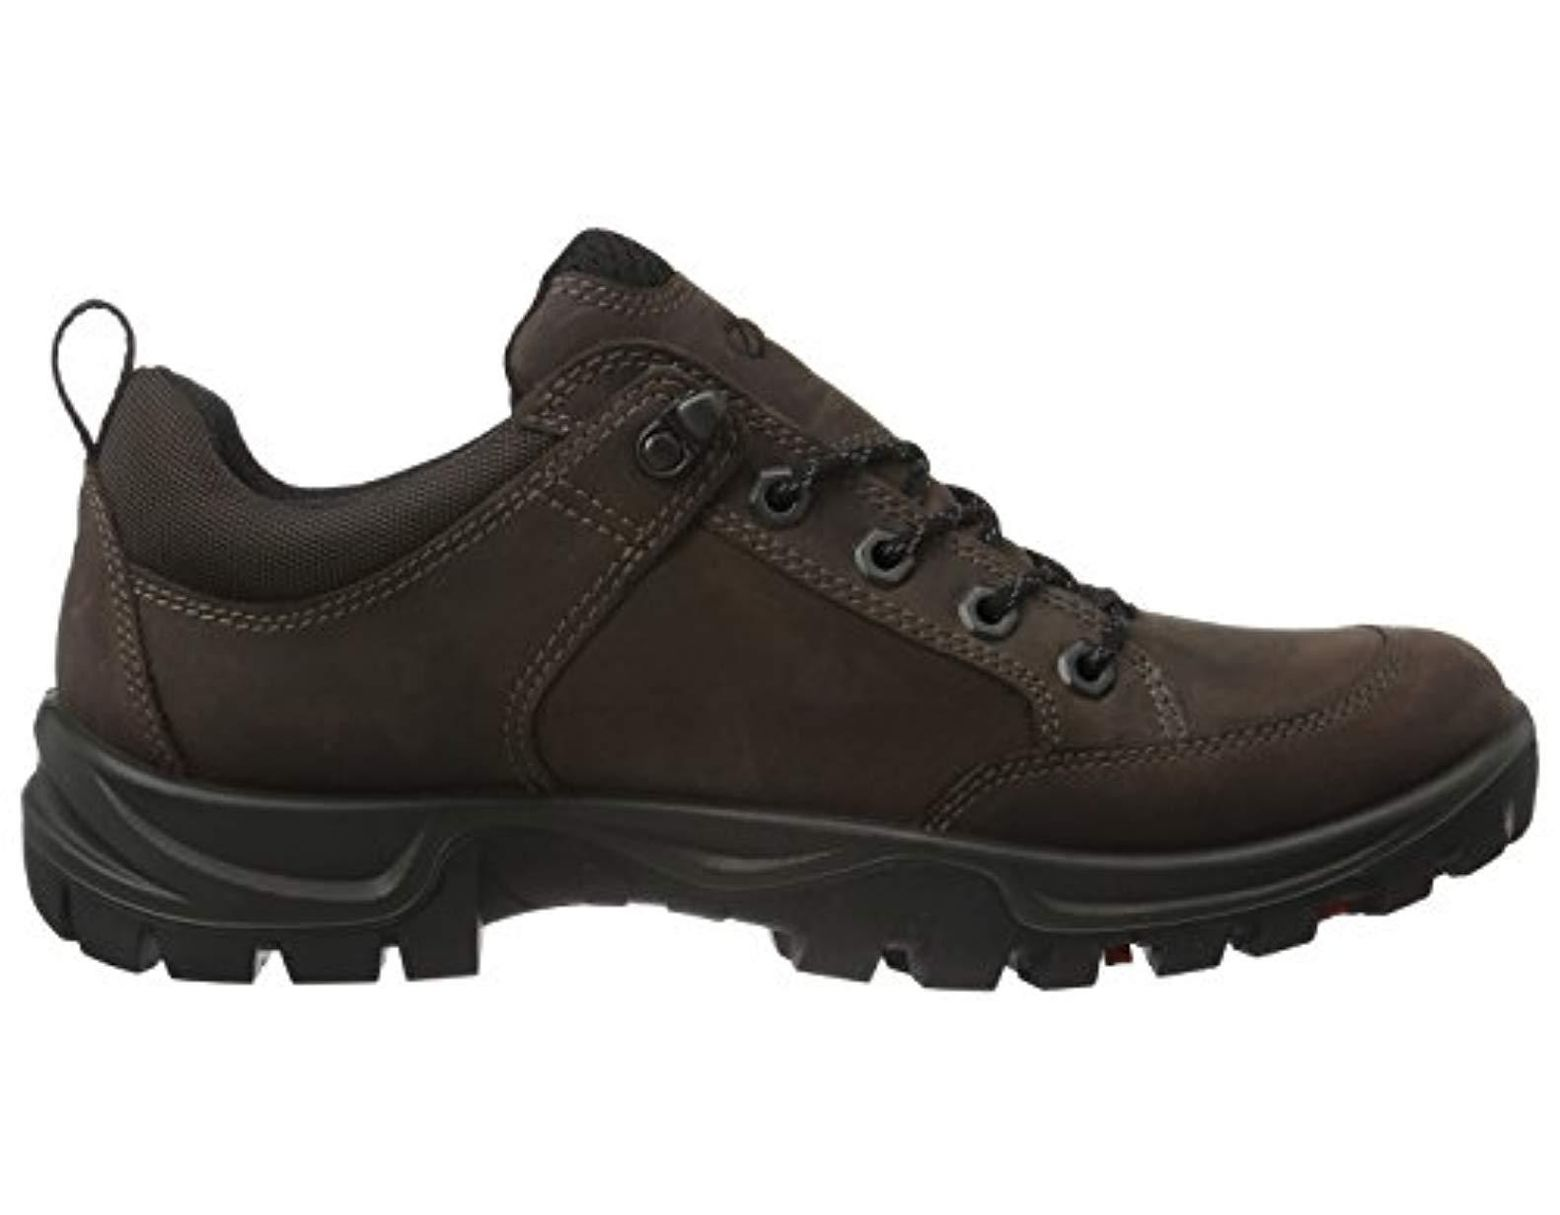 3c9fdb239dd Men's Black Expedition Iii Low Gore-tex Hiking Shoe